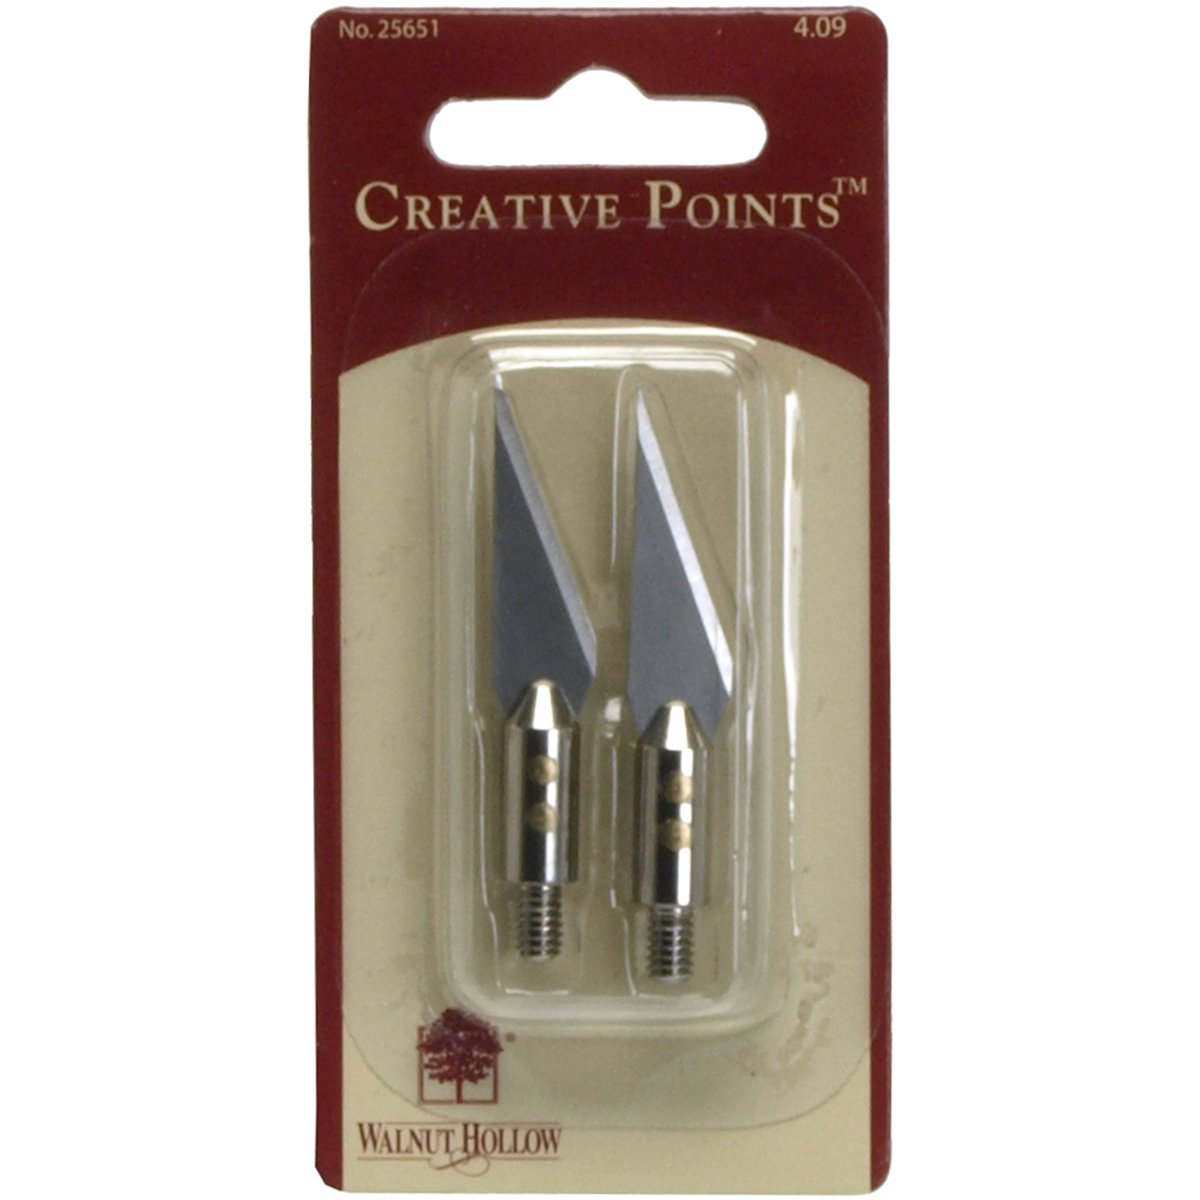 Walnut Hollow 25651 Professional Hot Knife Point For use with all Walnut Hollow Hot Tools; Cuts and Shapes a Variety of Materials Such as Foam, Faux Pumpkins, Foam Core Board, and Wax